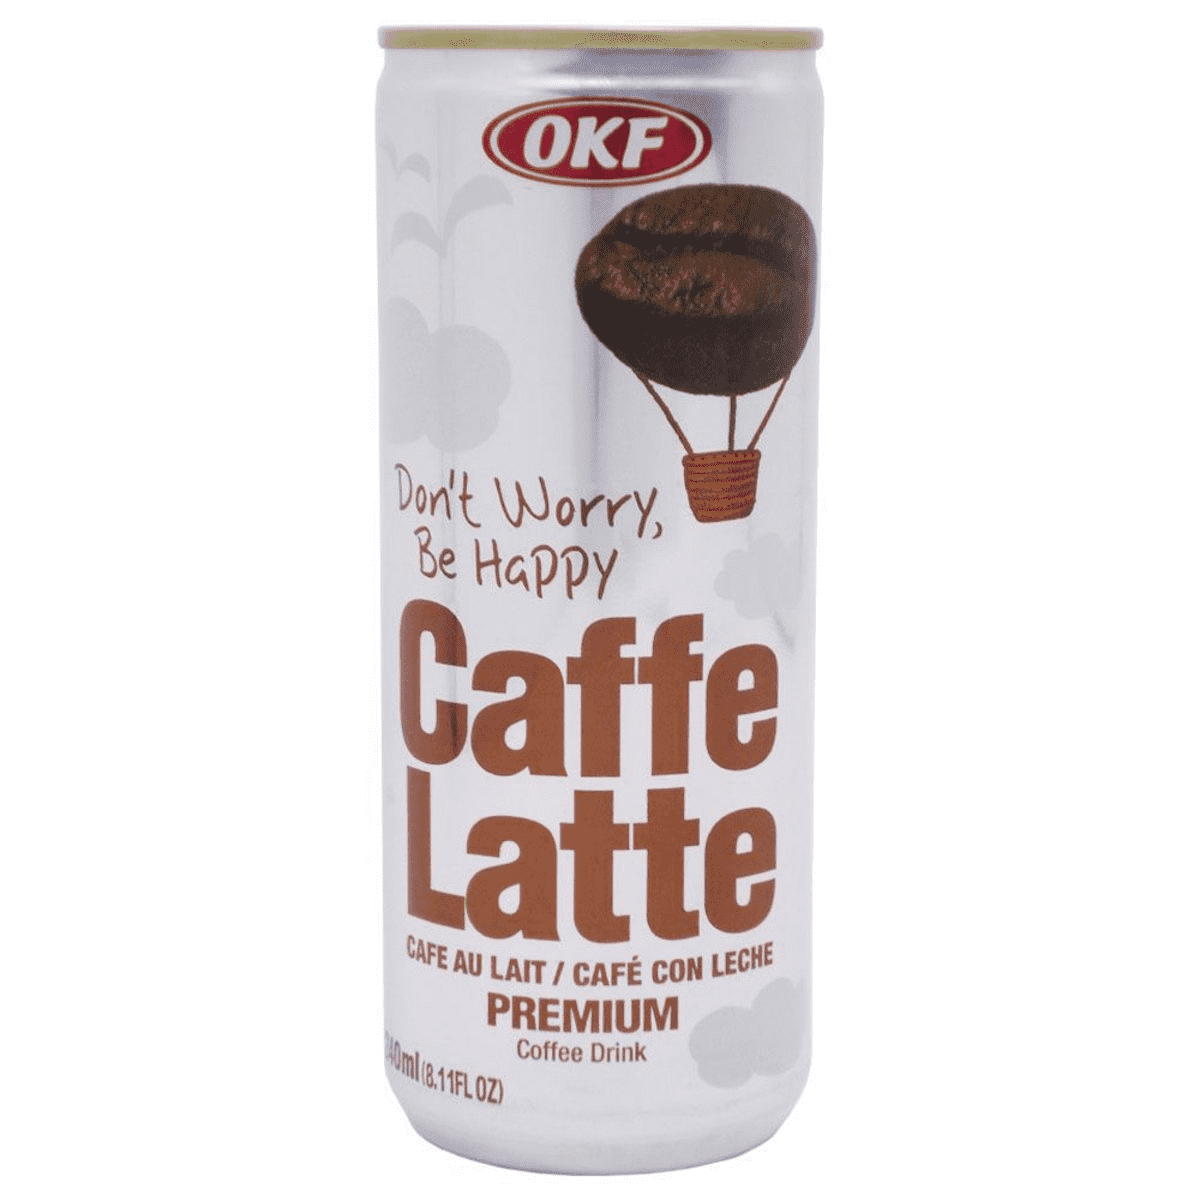 0884394001917 - OKF CAFE LATTE